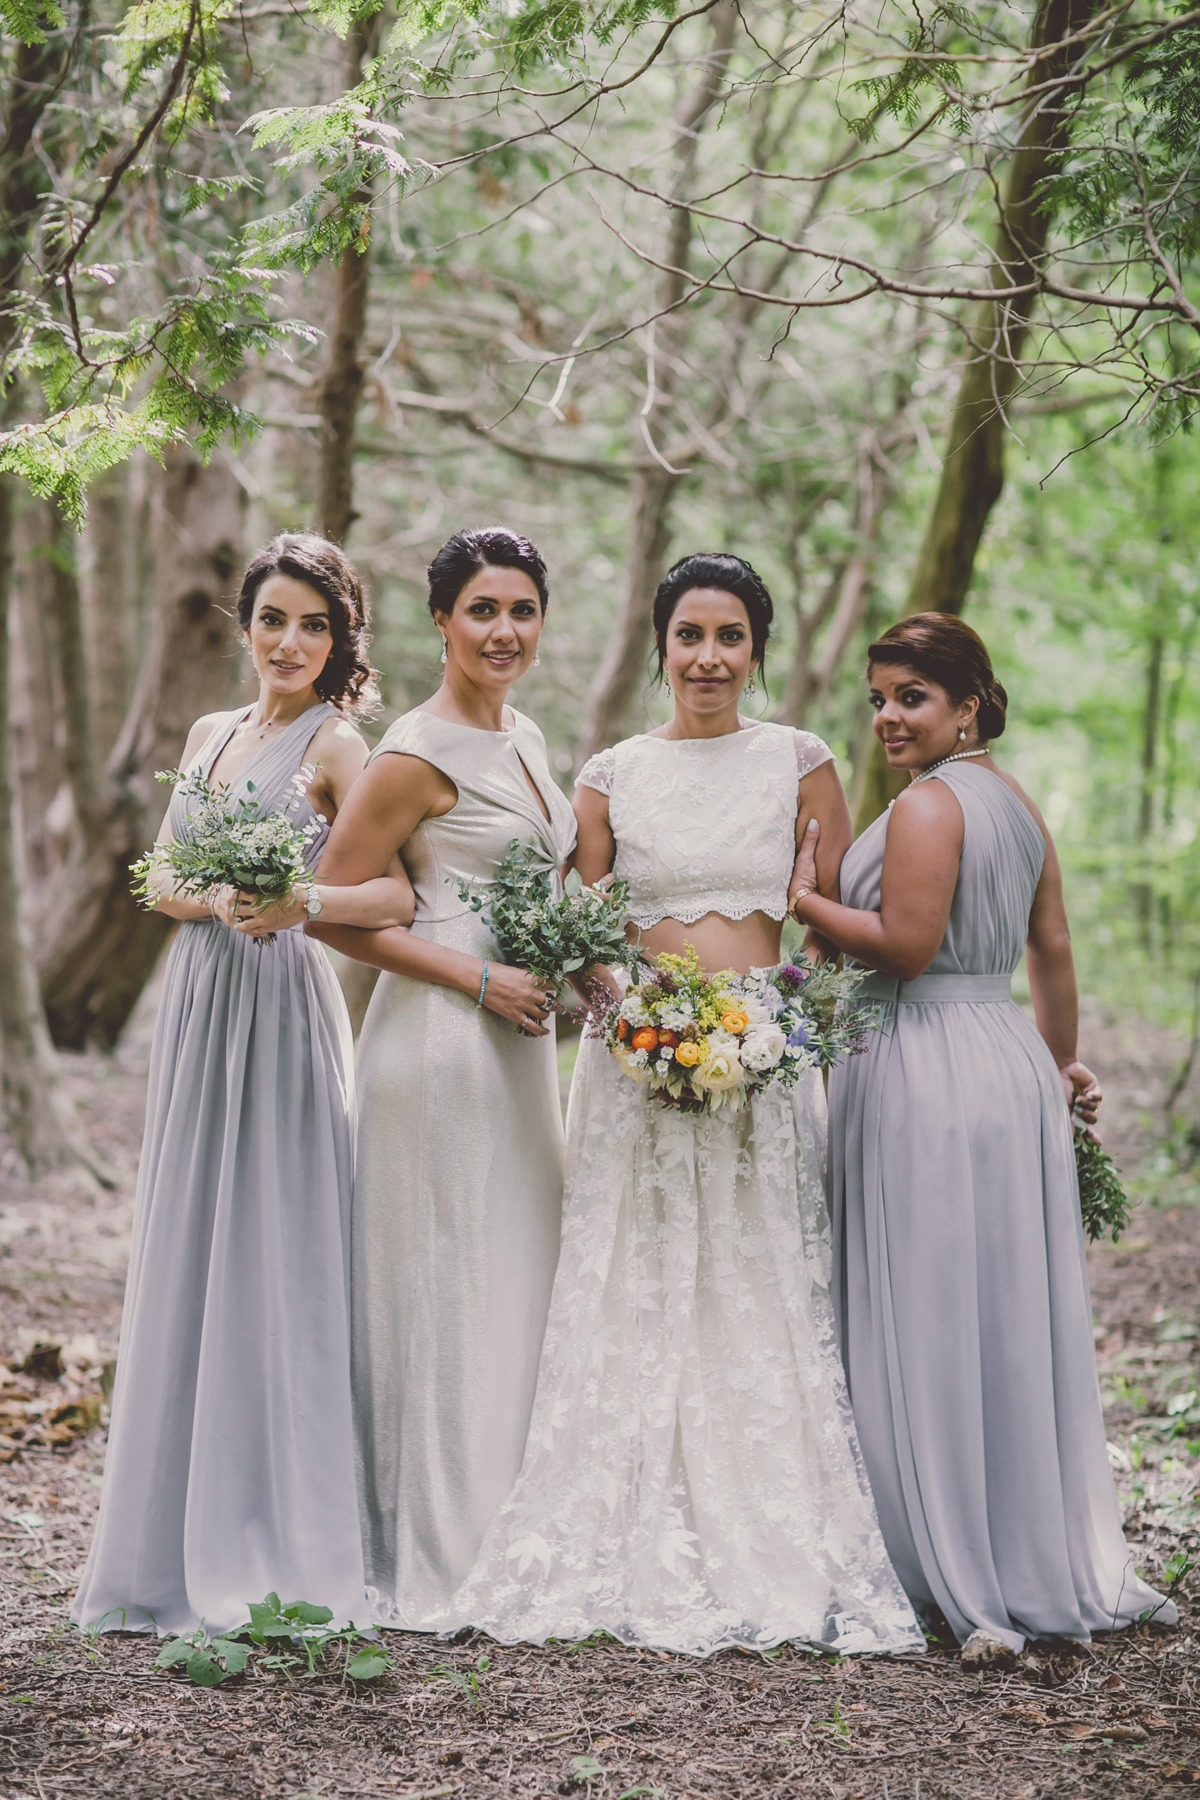 silver and grey bridesmaids and a two piece wedding dress